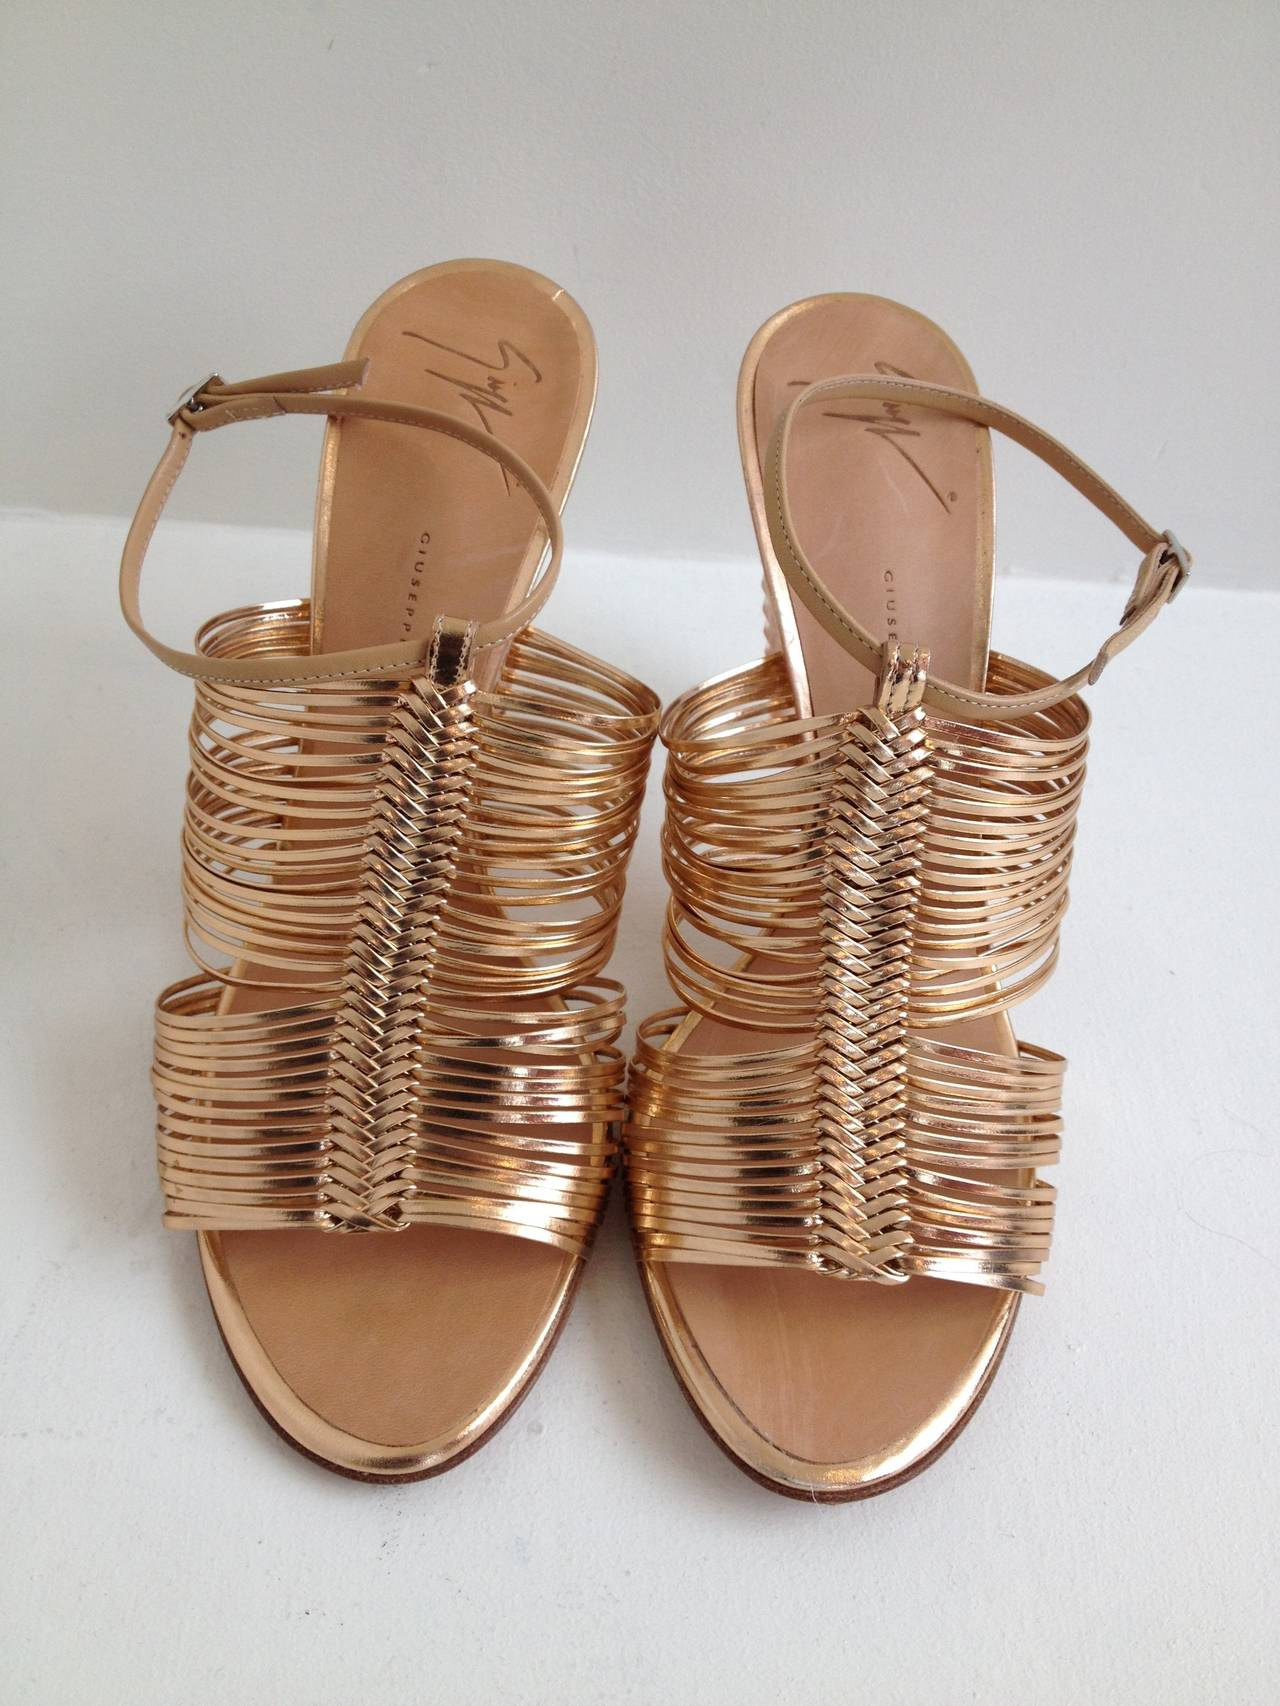 Giuseppe Zanotti Rose Gold Sandals with Studded Heel 2